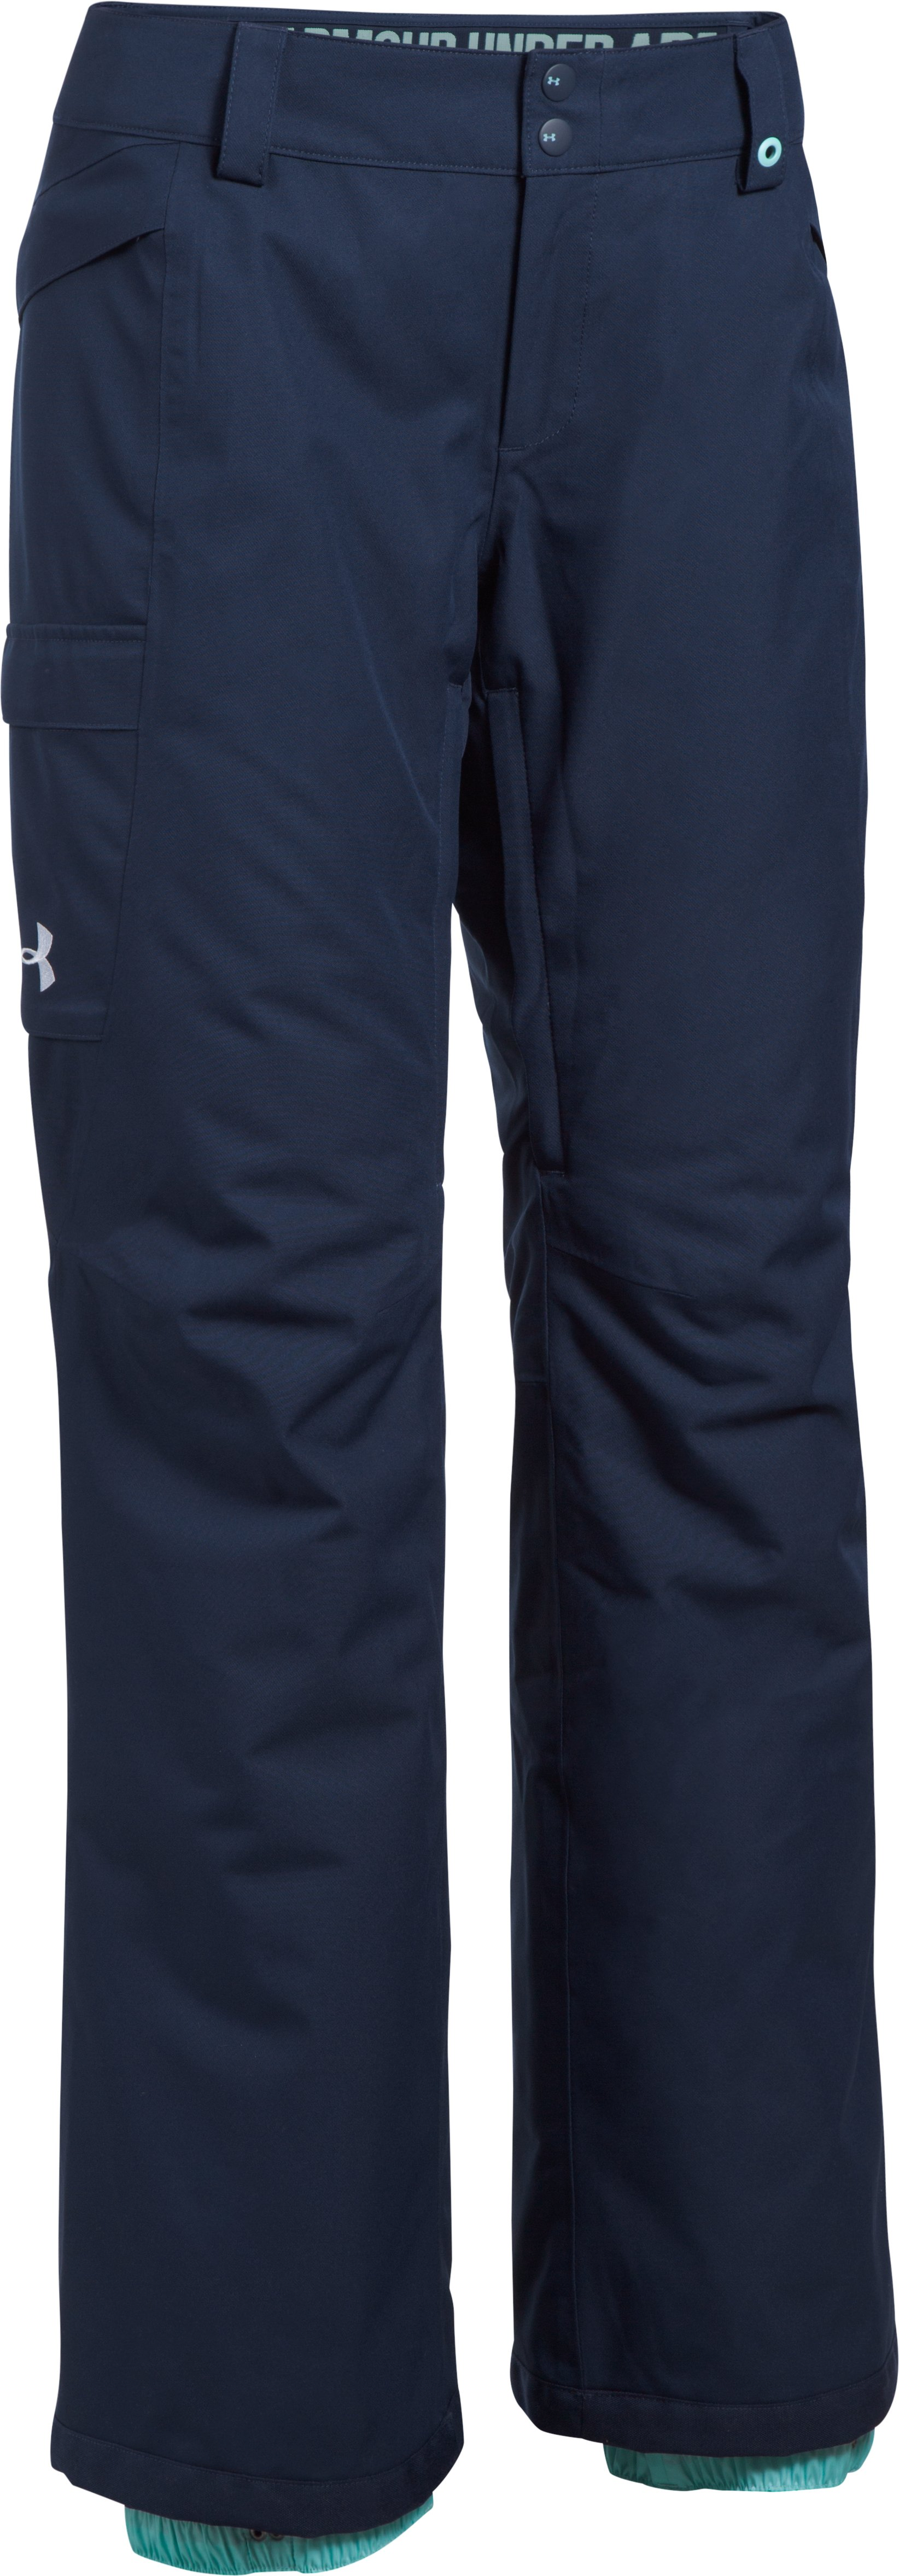 Women's UA ColdGear® Infrared Chutes Insulated Pants, Midnight Navy, undefined